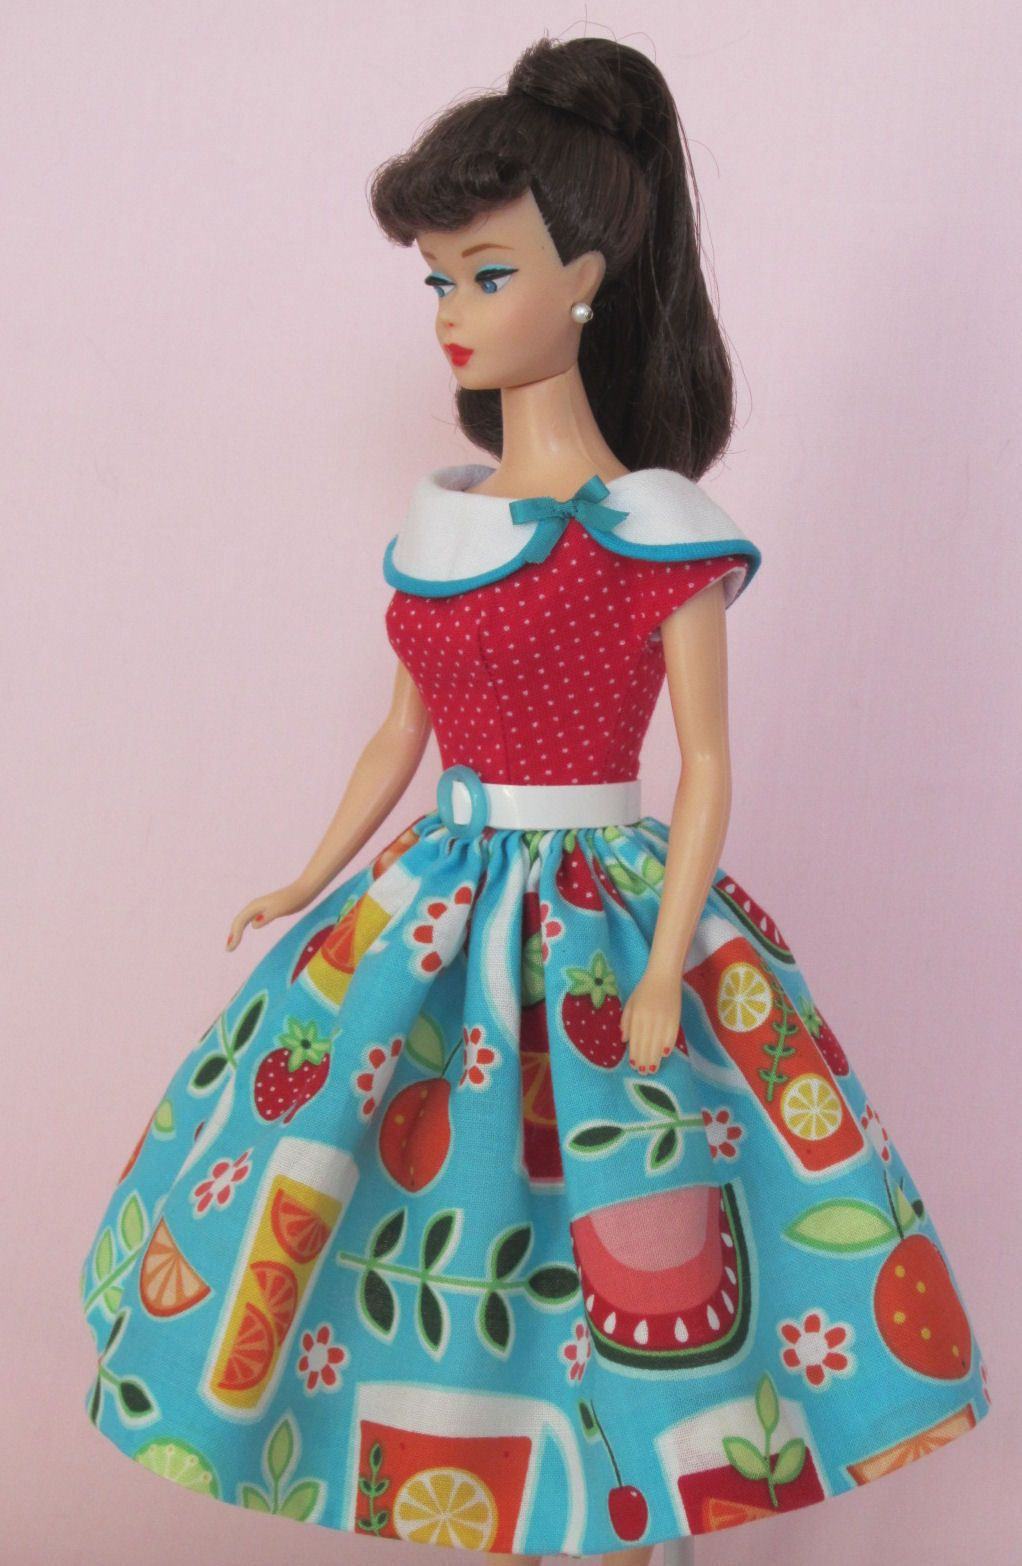 Vintage Barbie Doll Dress Reproduction Repro Barbie Clothes By Eggie On Ebay Http Www Ebay Com Itm Vintage Barbie Clothes Vintage Barbie Dolls Barbie Fashion